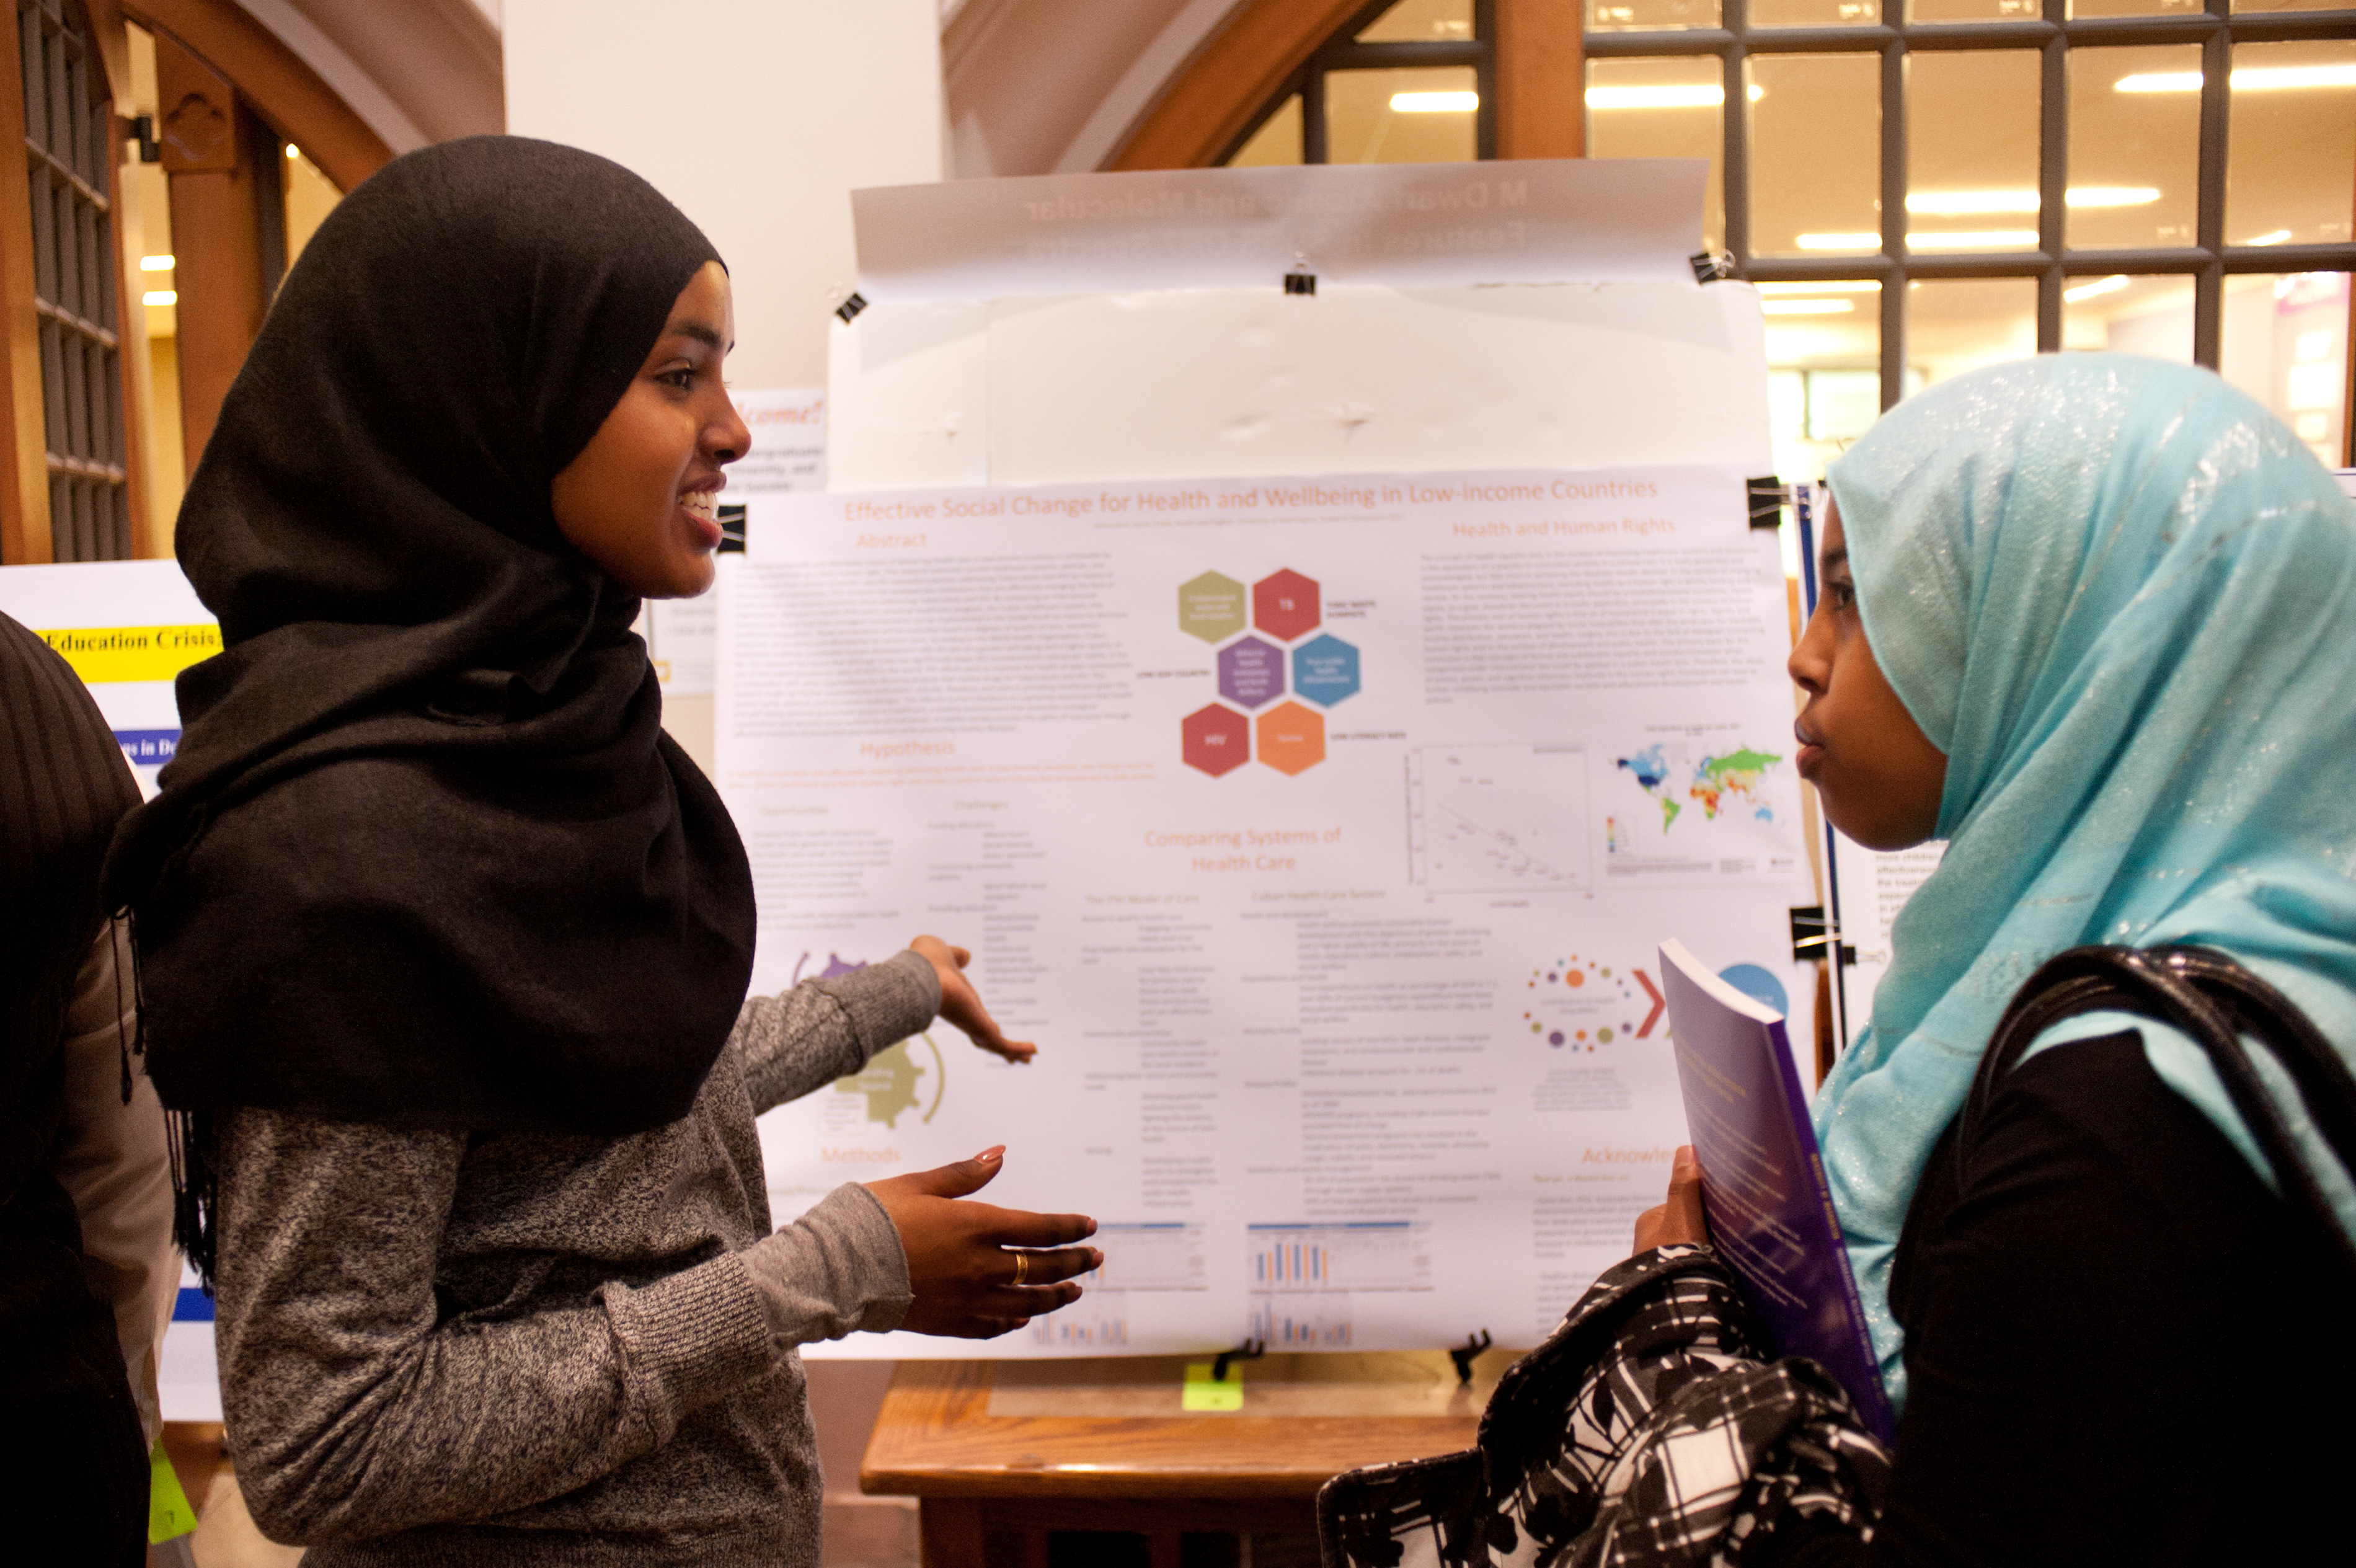 A student at the 2011 symposium presents 'Effective Social Change for Health and Well-being in Low-Income Countries.'